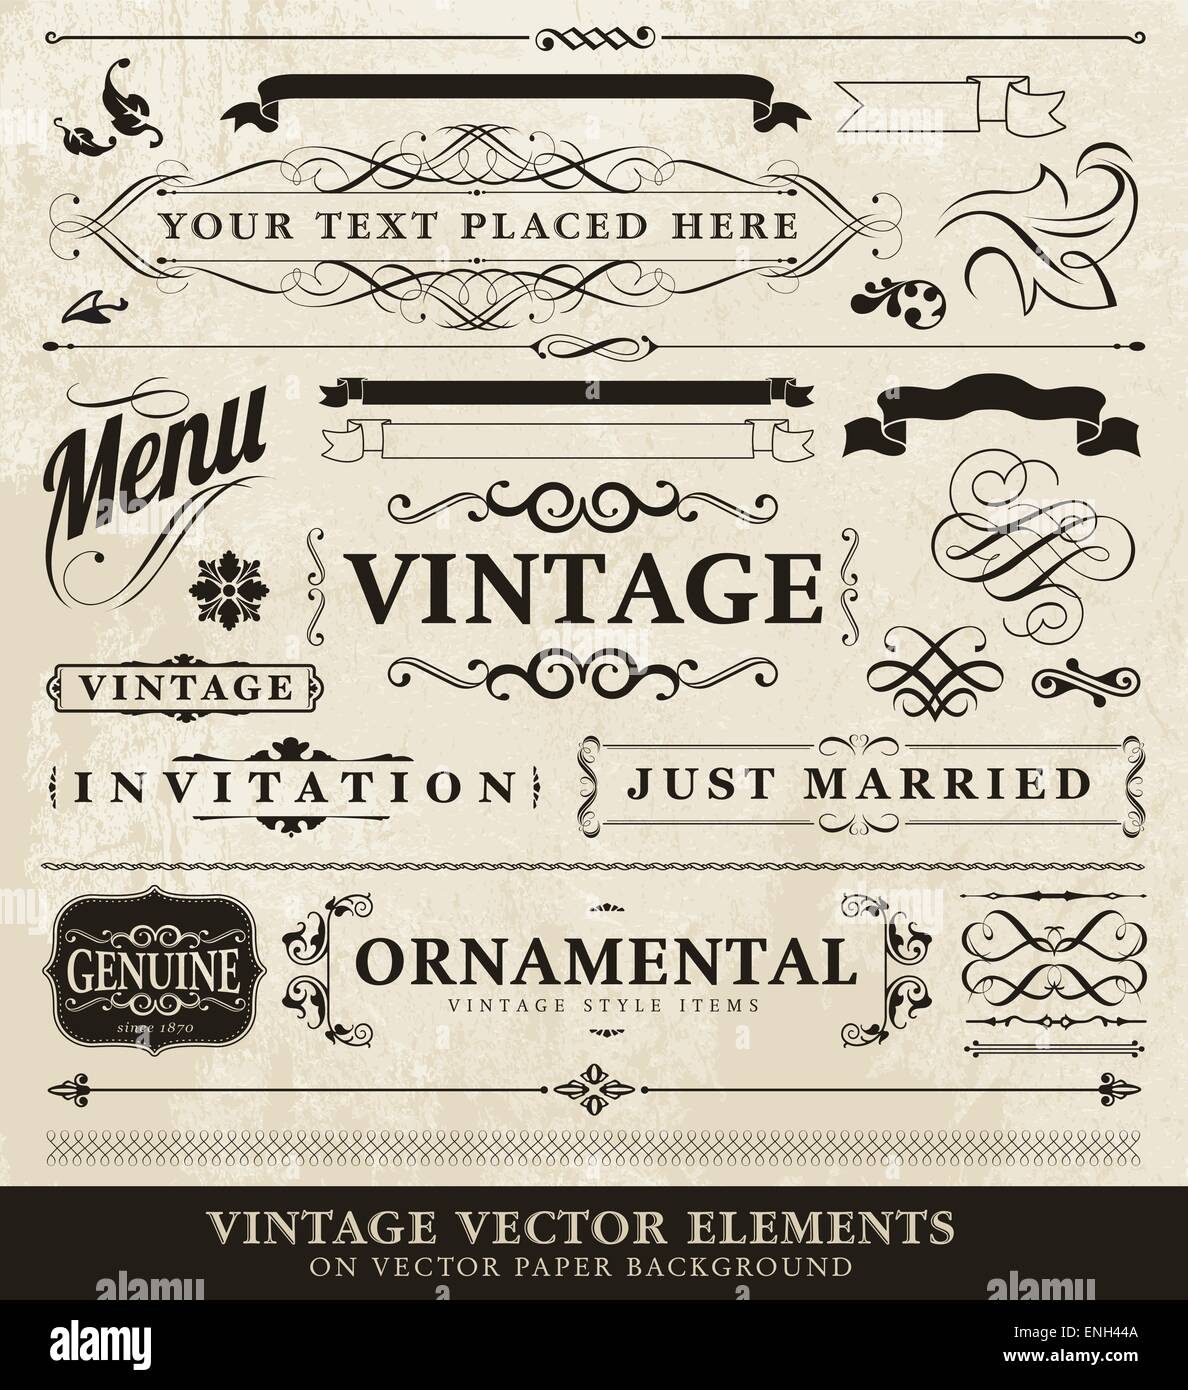 Vector vintage style elements - Stock Image